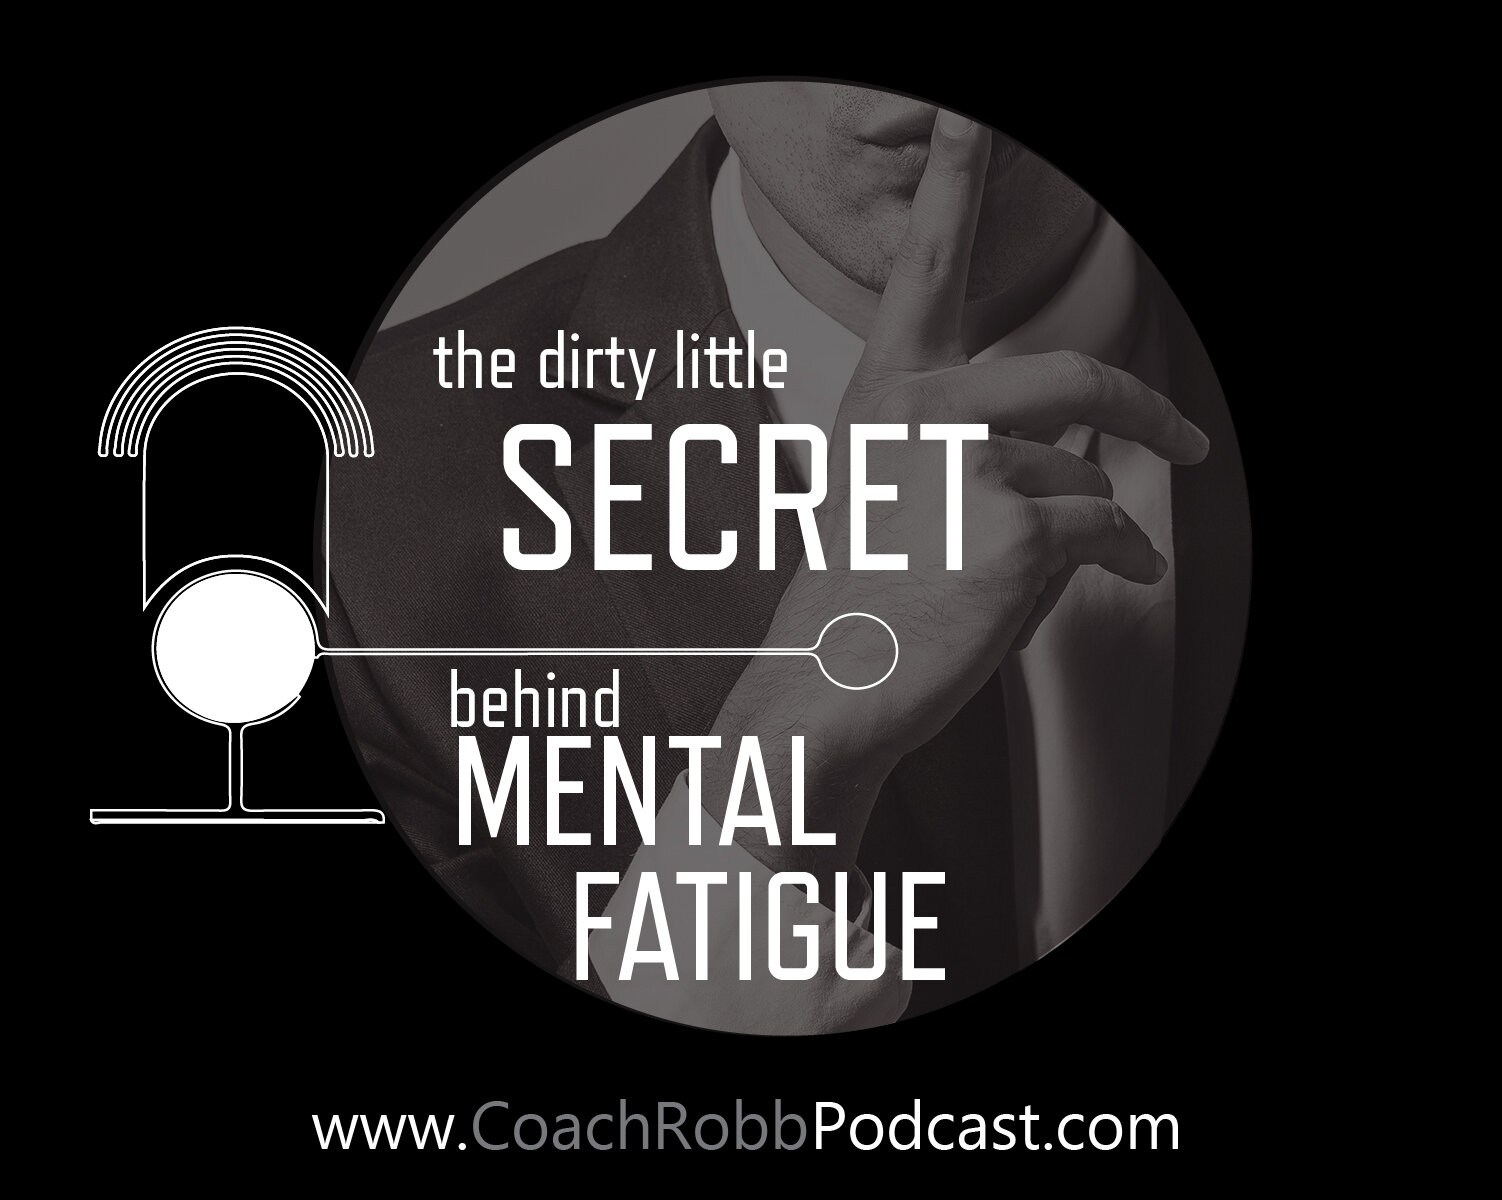 The Dirty Little Secret Behind Mental Fatigue